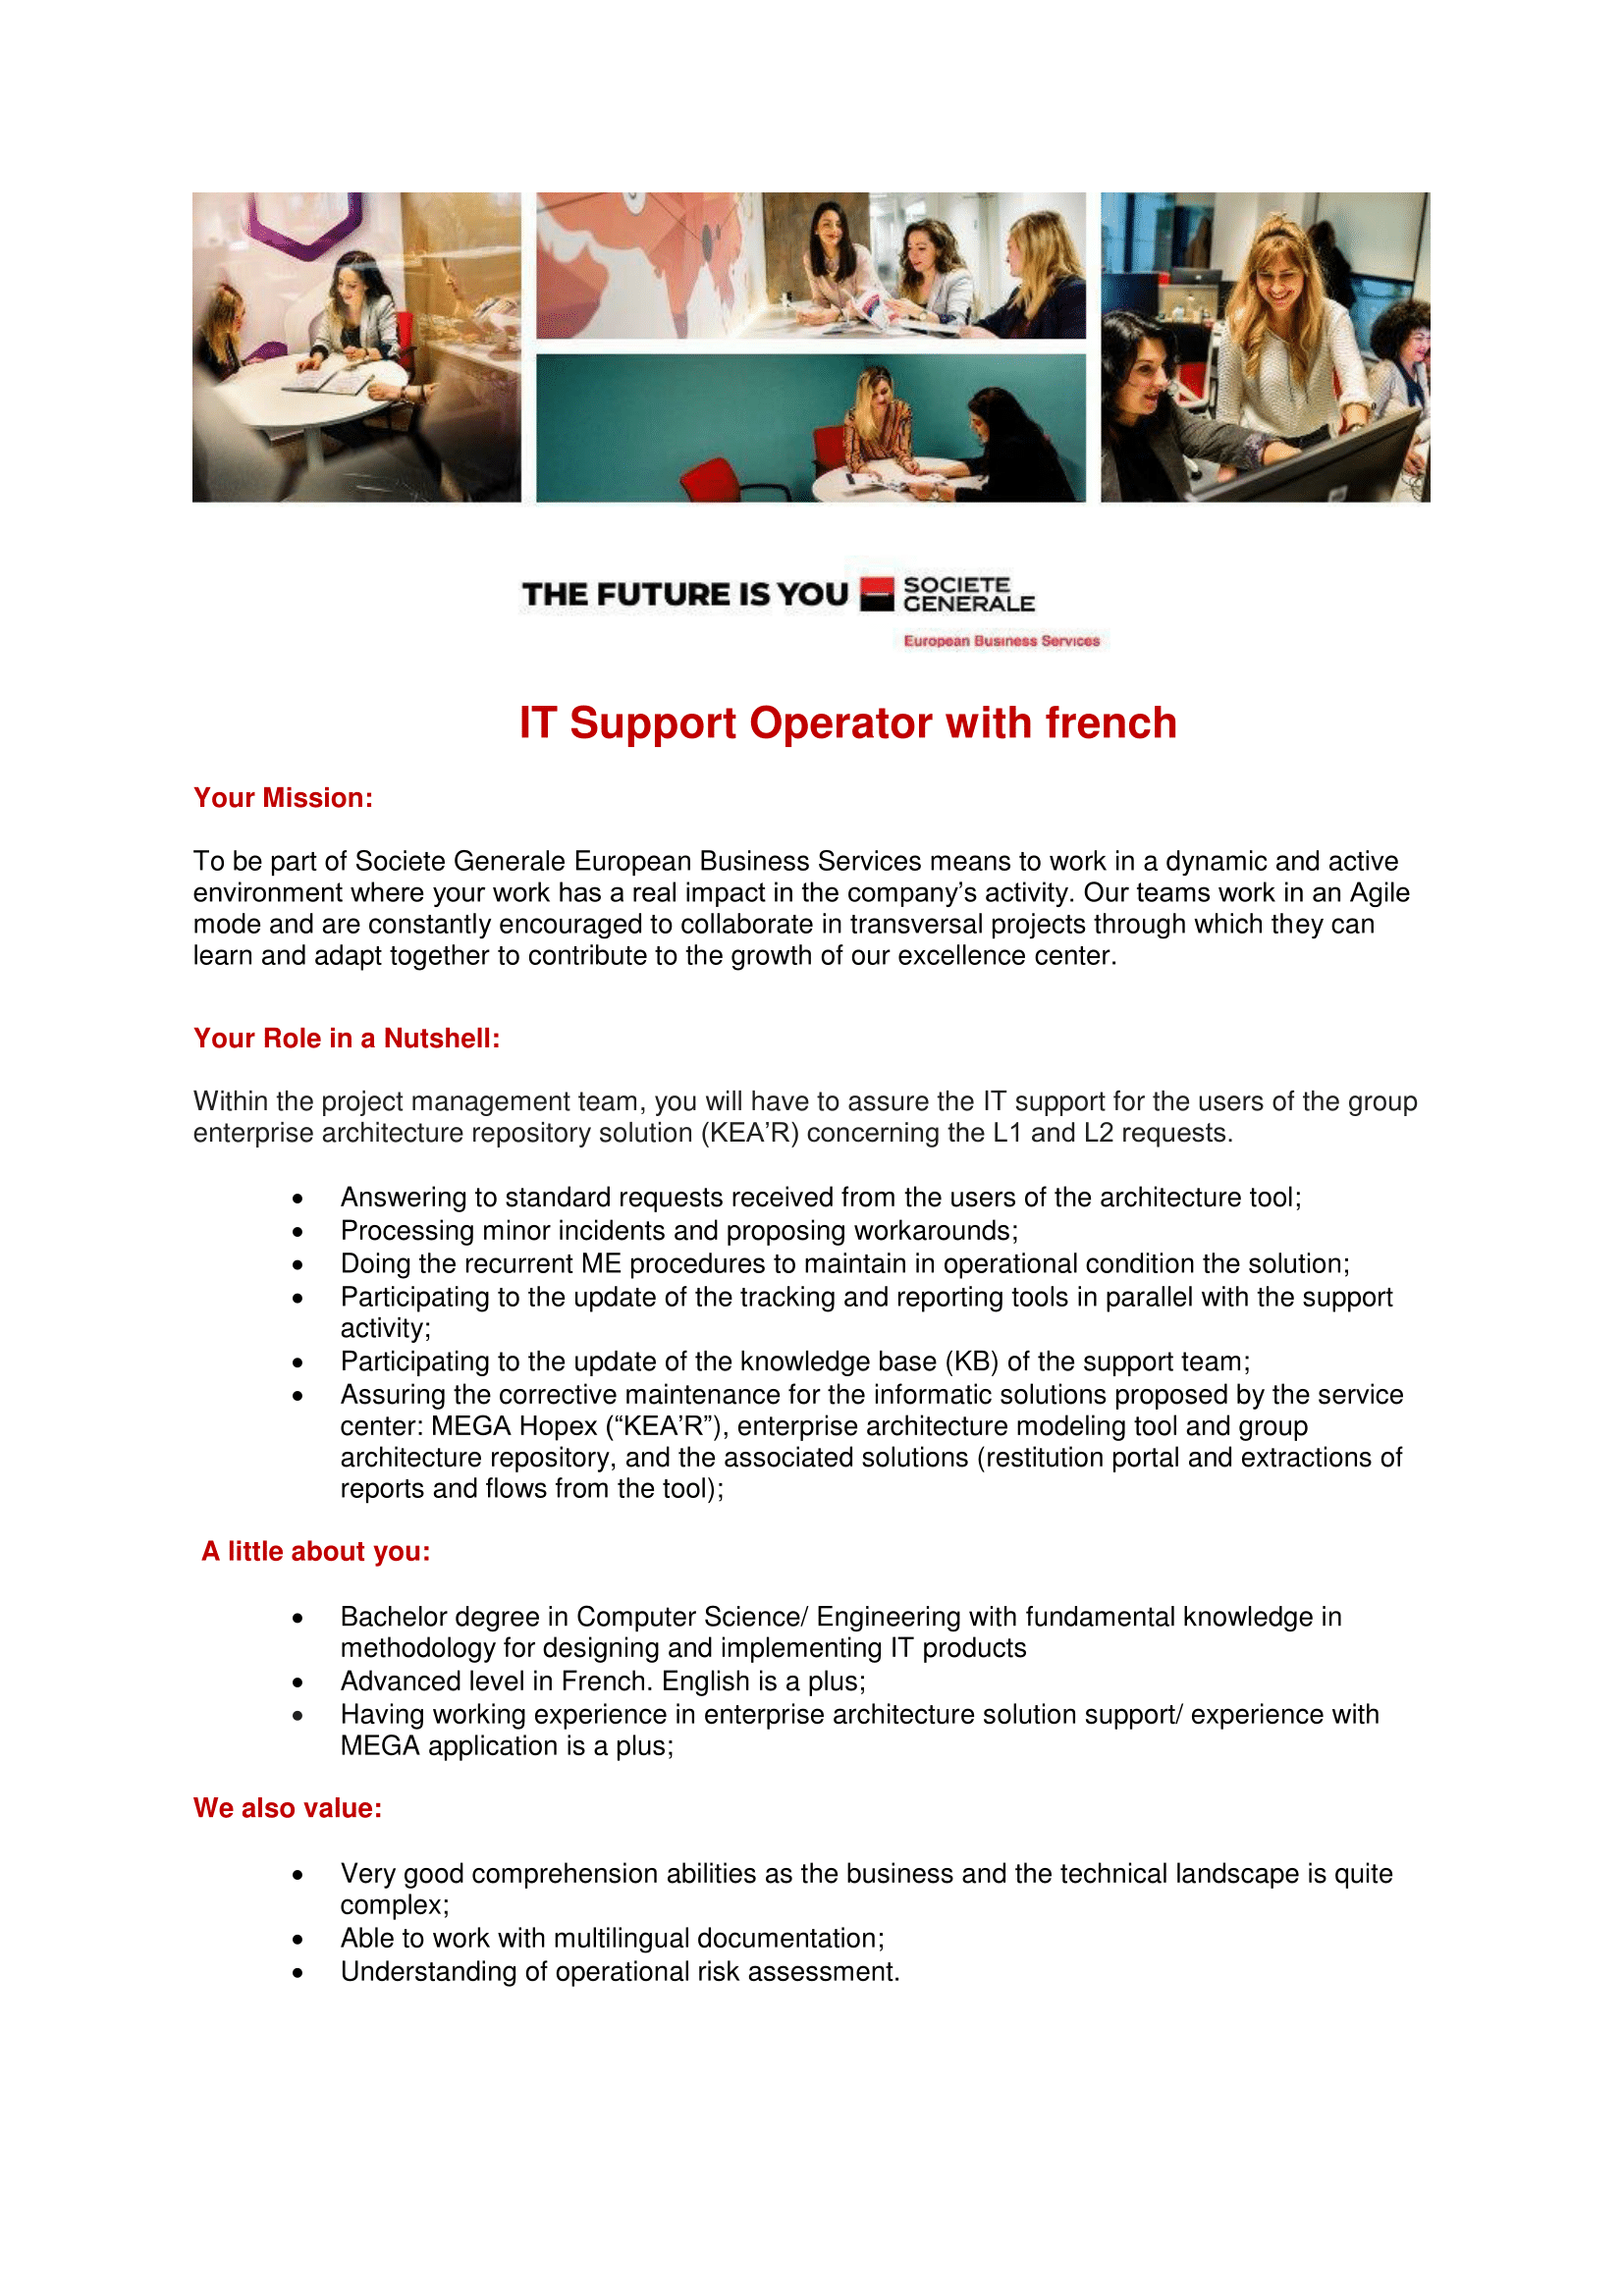 JD - IT Support Operator with french-1